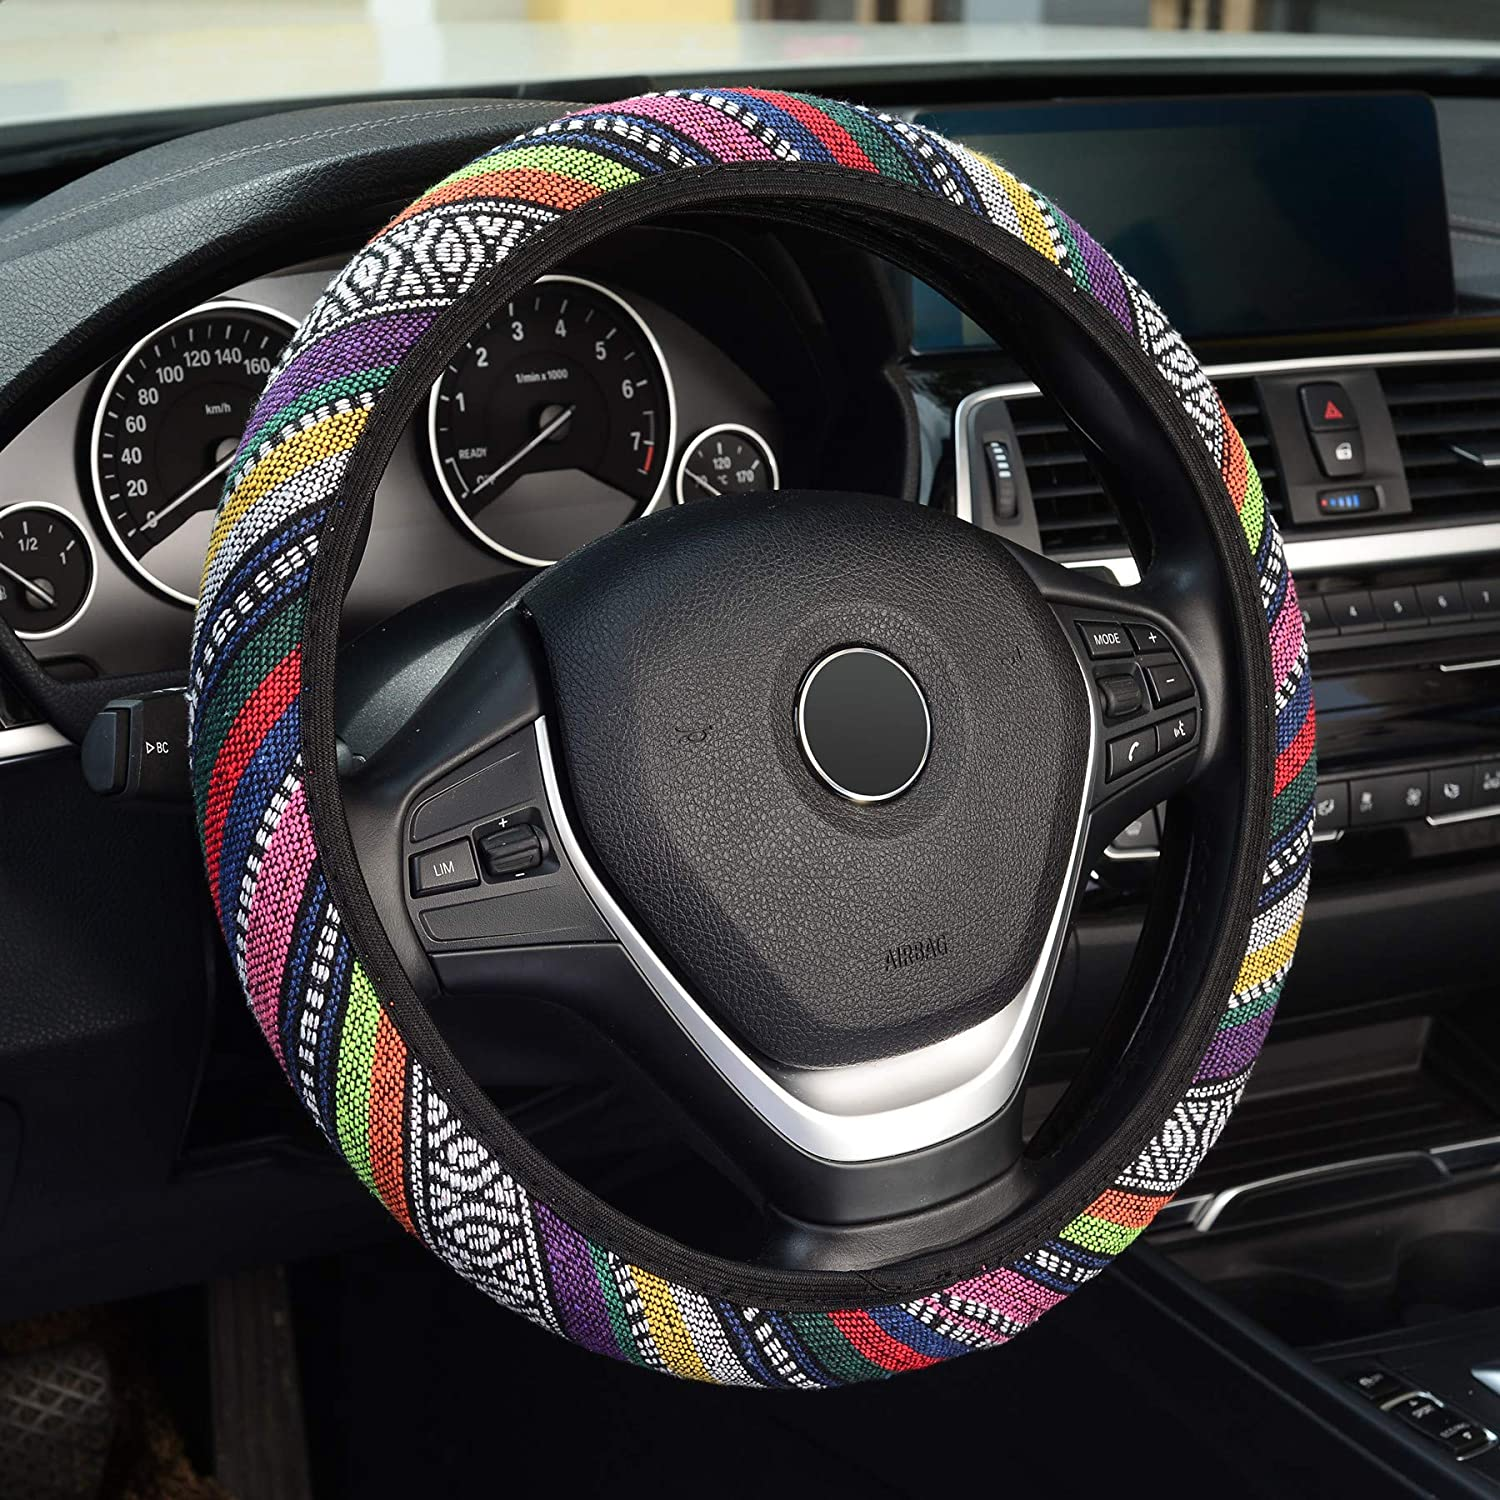 KAFEEK Elastic Linen Steering Wheel Cover,Warm in Winter and Cool in Summer,Universal 15 inch, Colorful